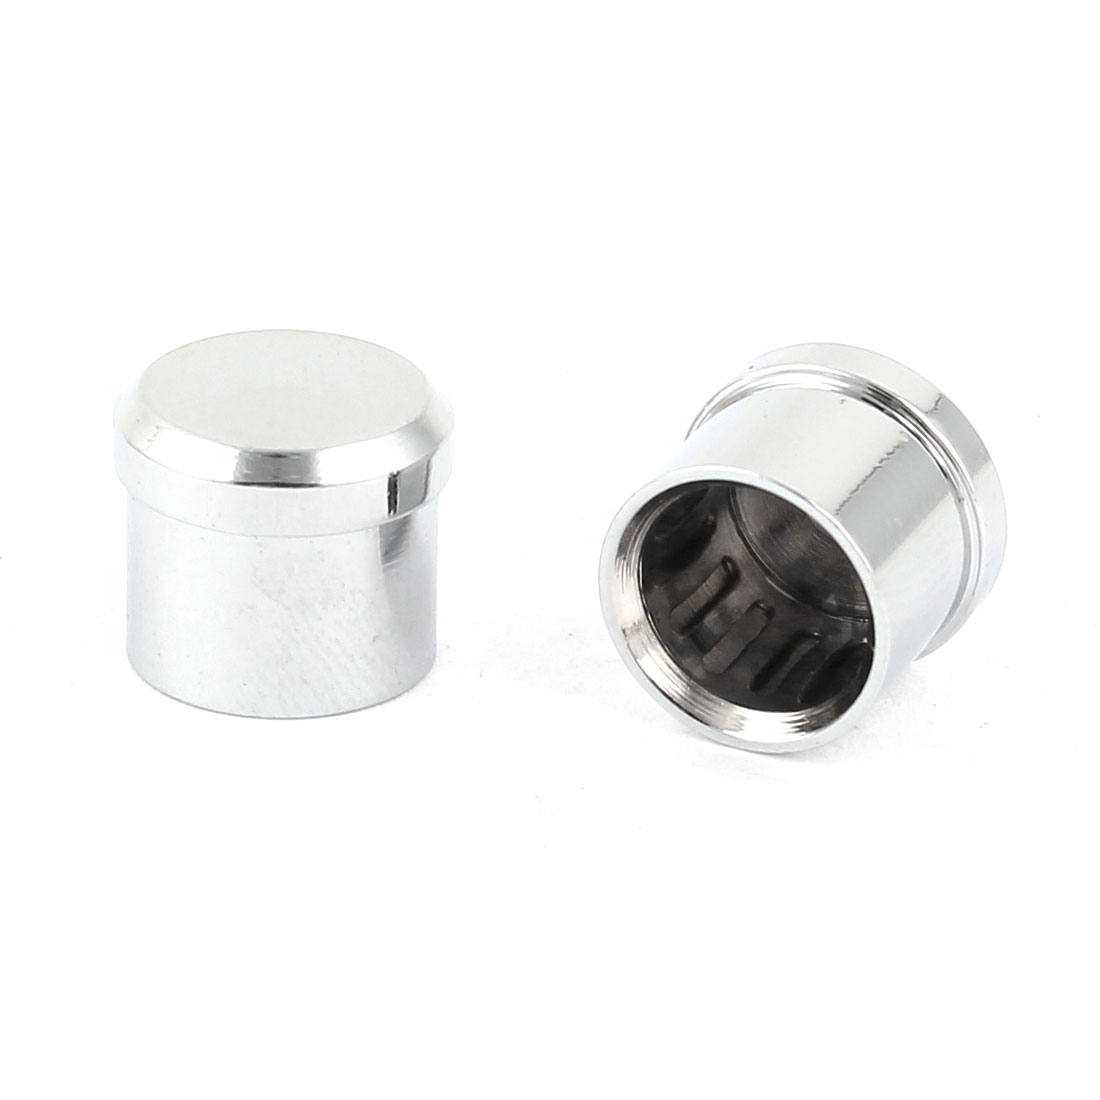 2 Pcs Silver Tone Metal RCA Protector Cap Shielding Dust Proof Cover